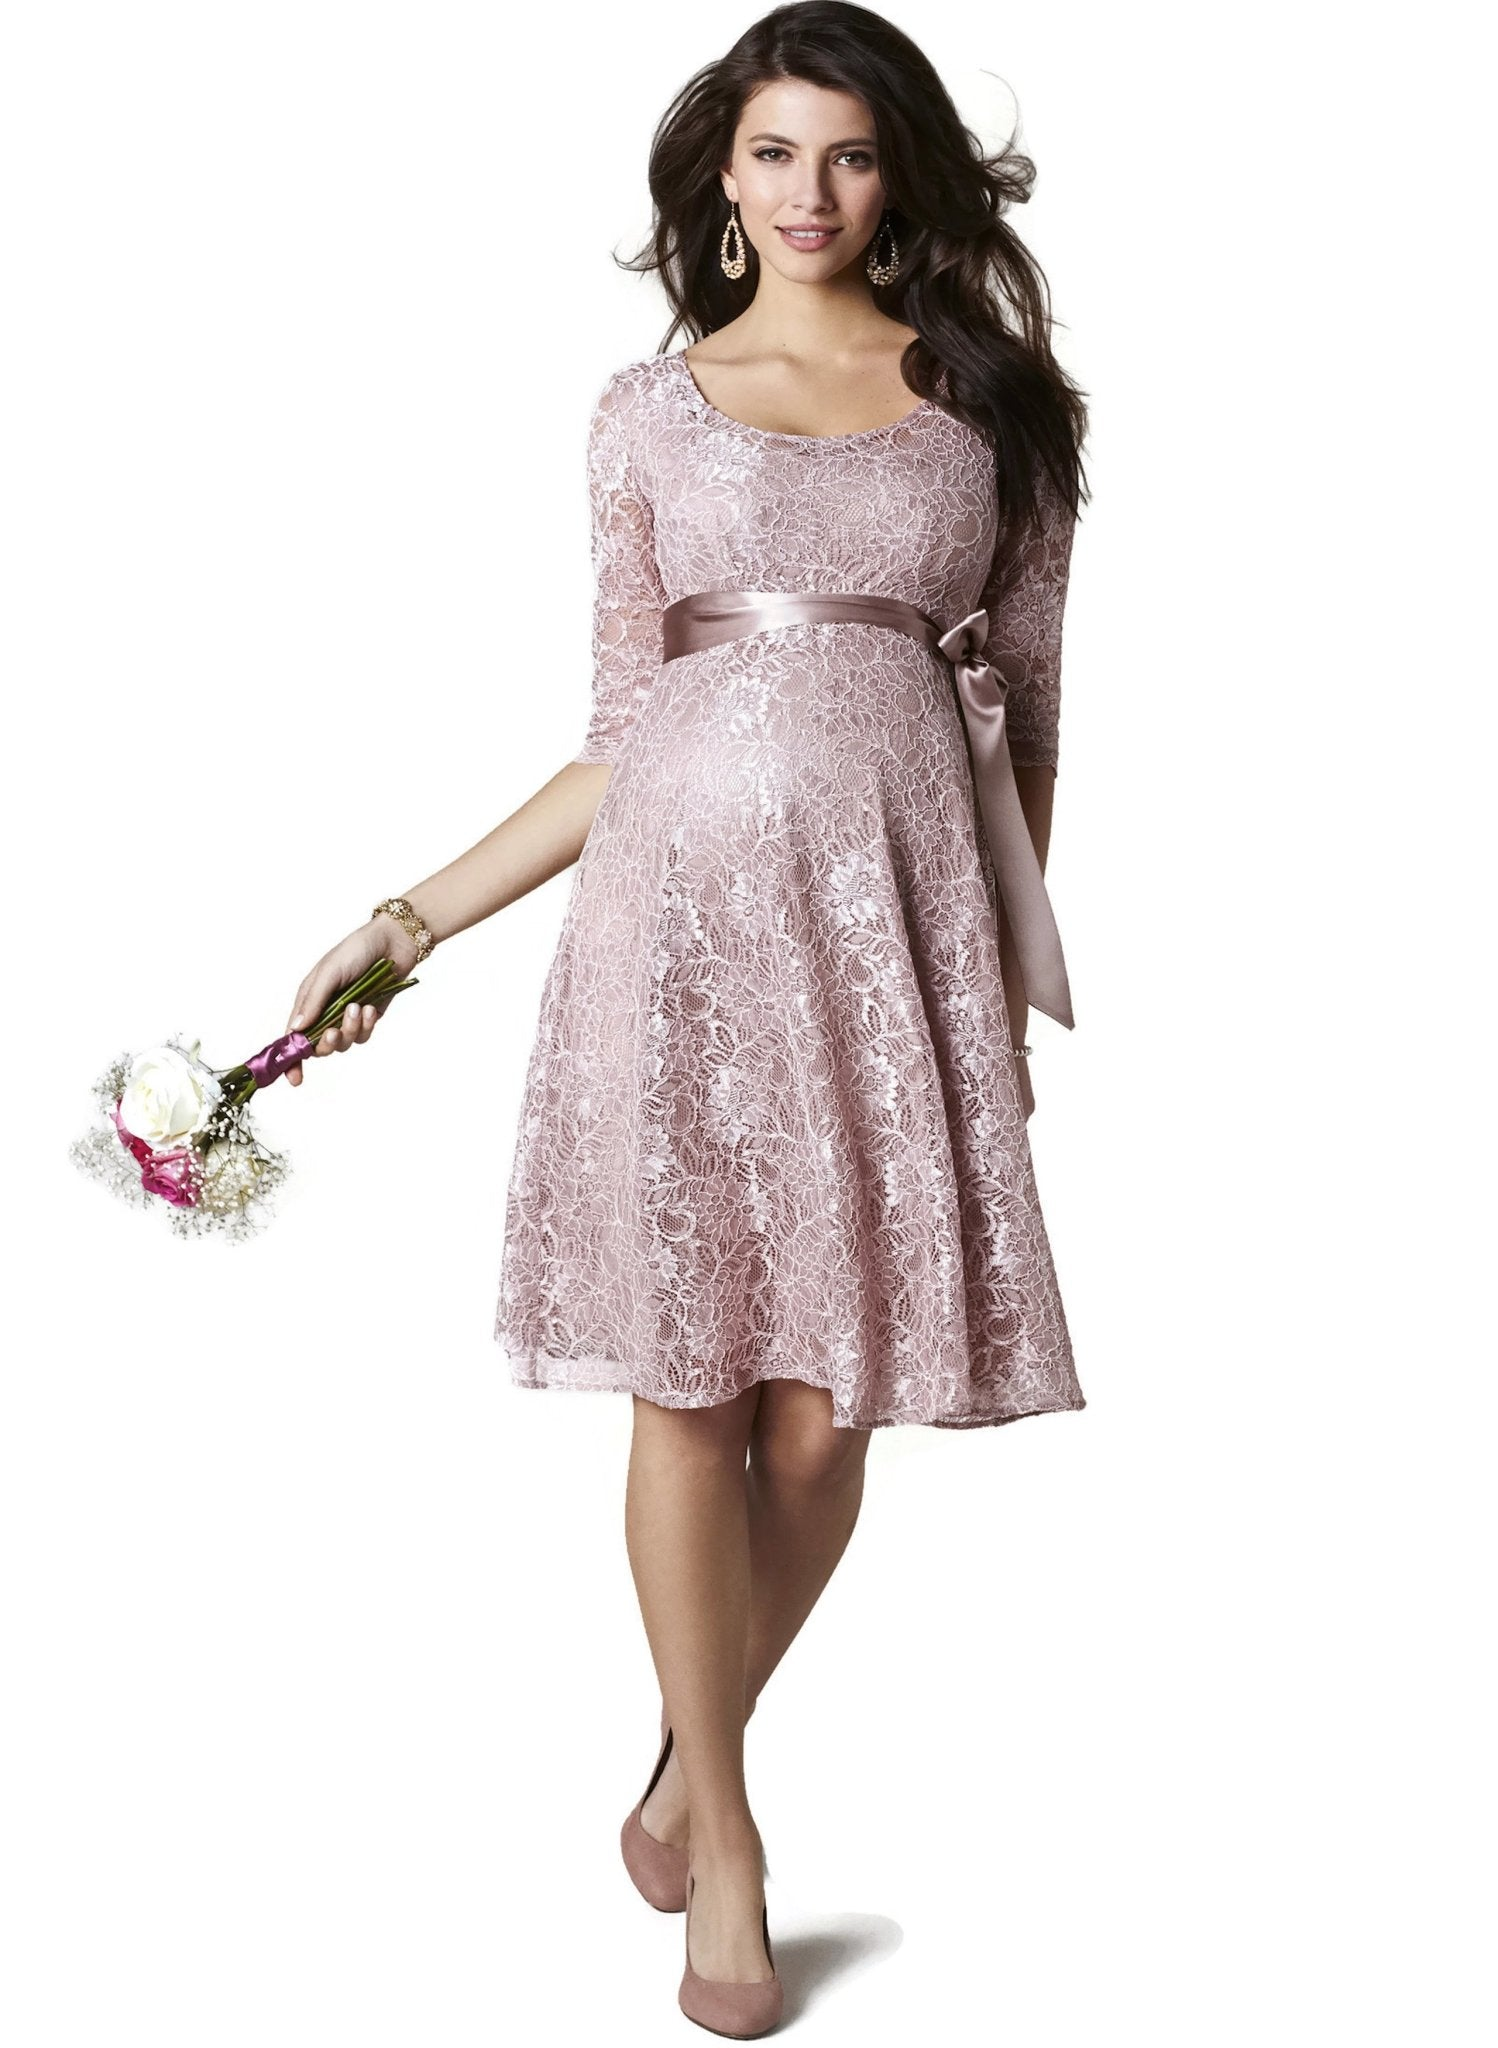 Freya Maternity Dress - Orchid Blush - Mums and Bumps